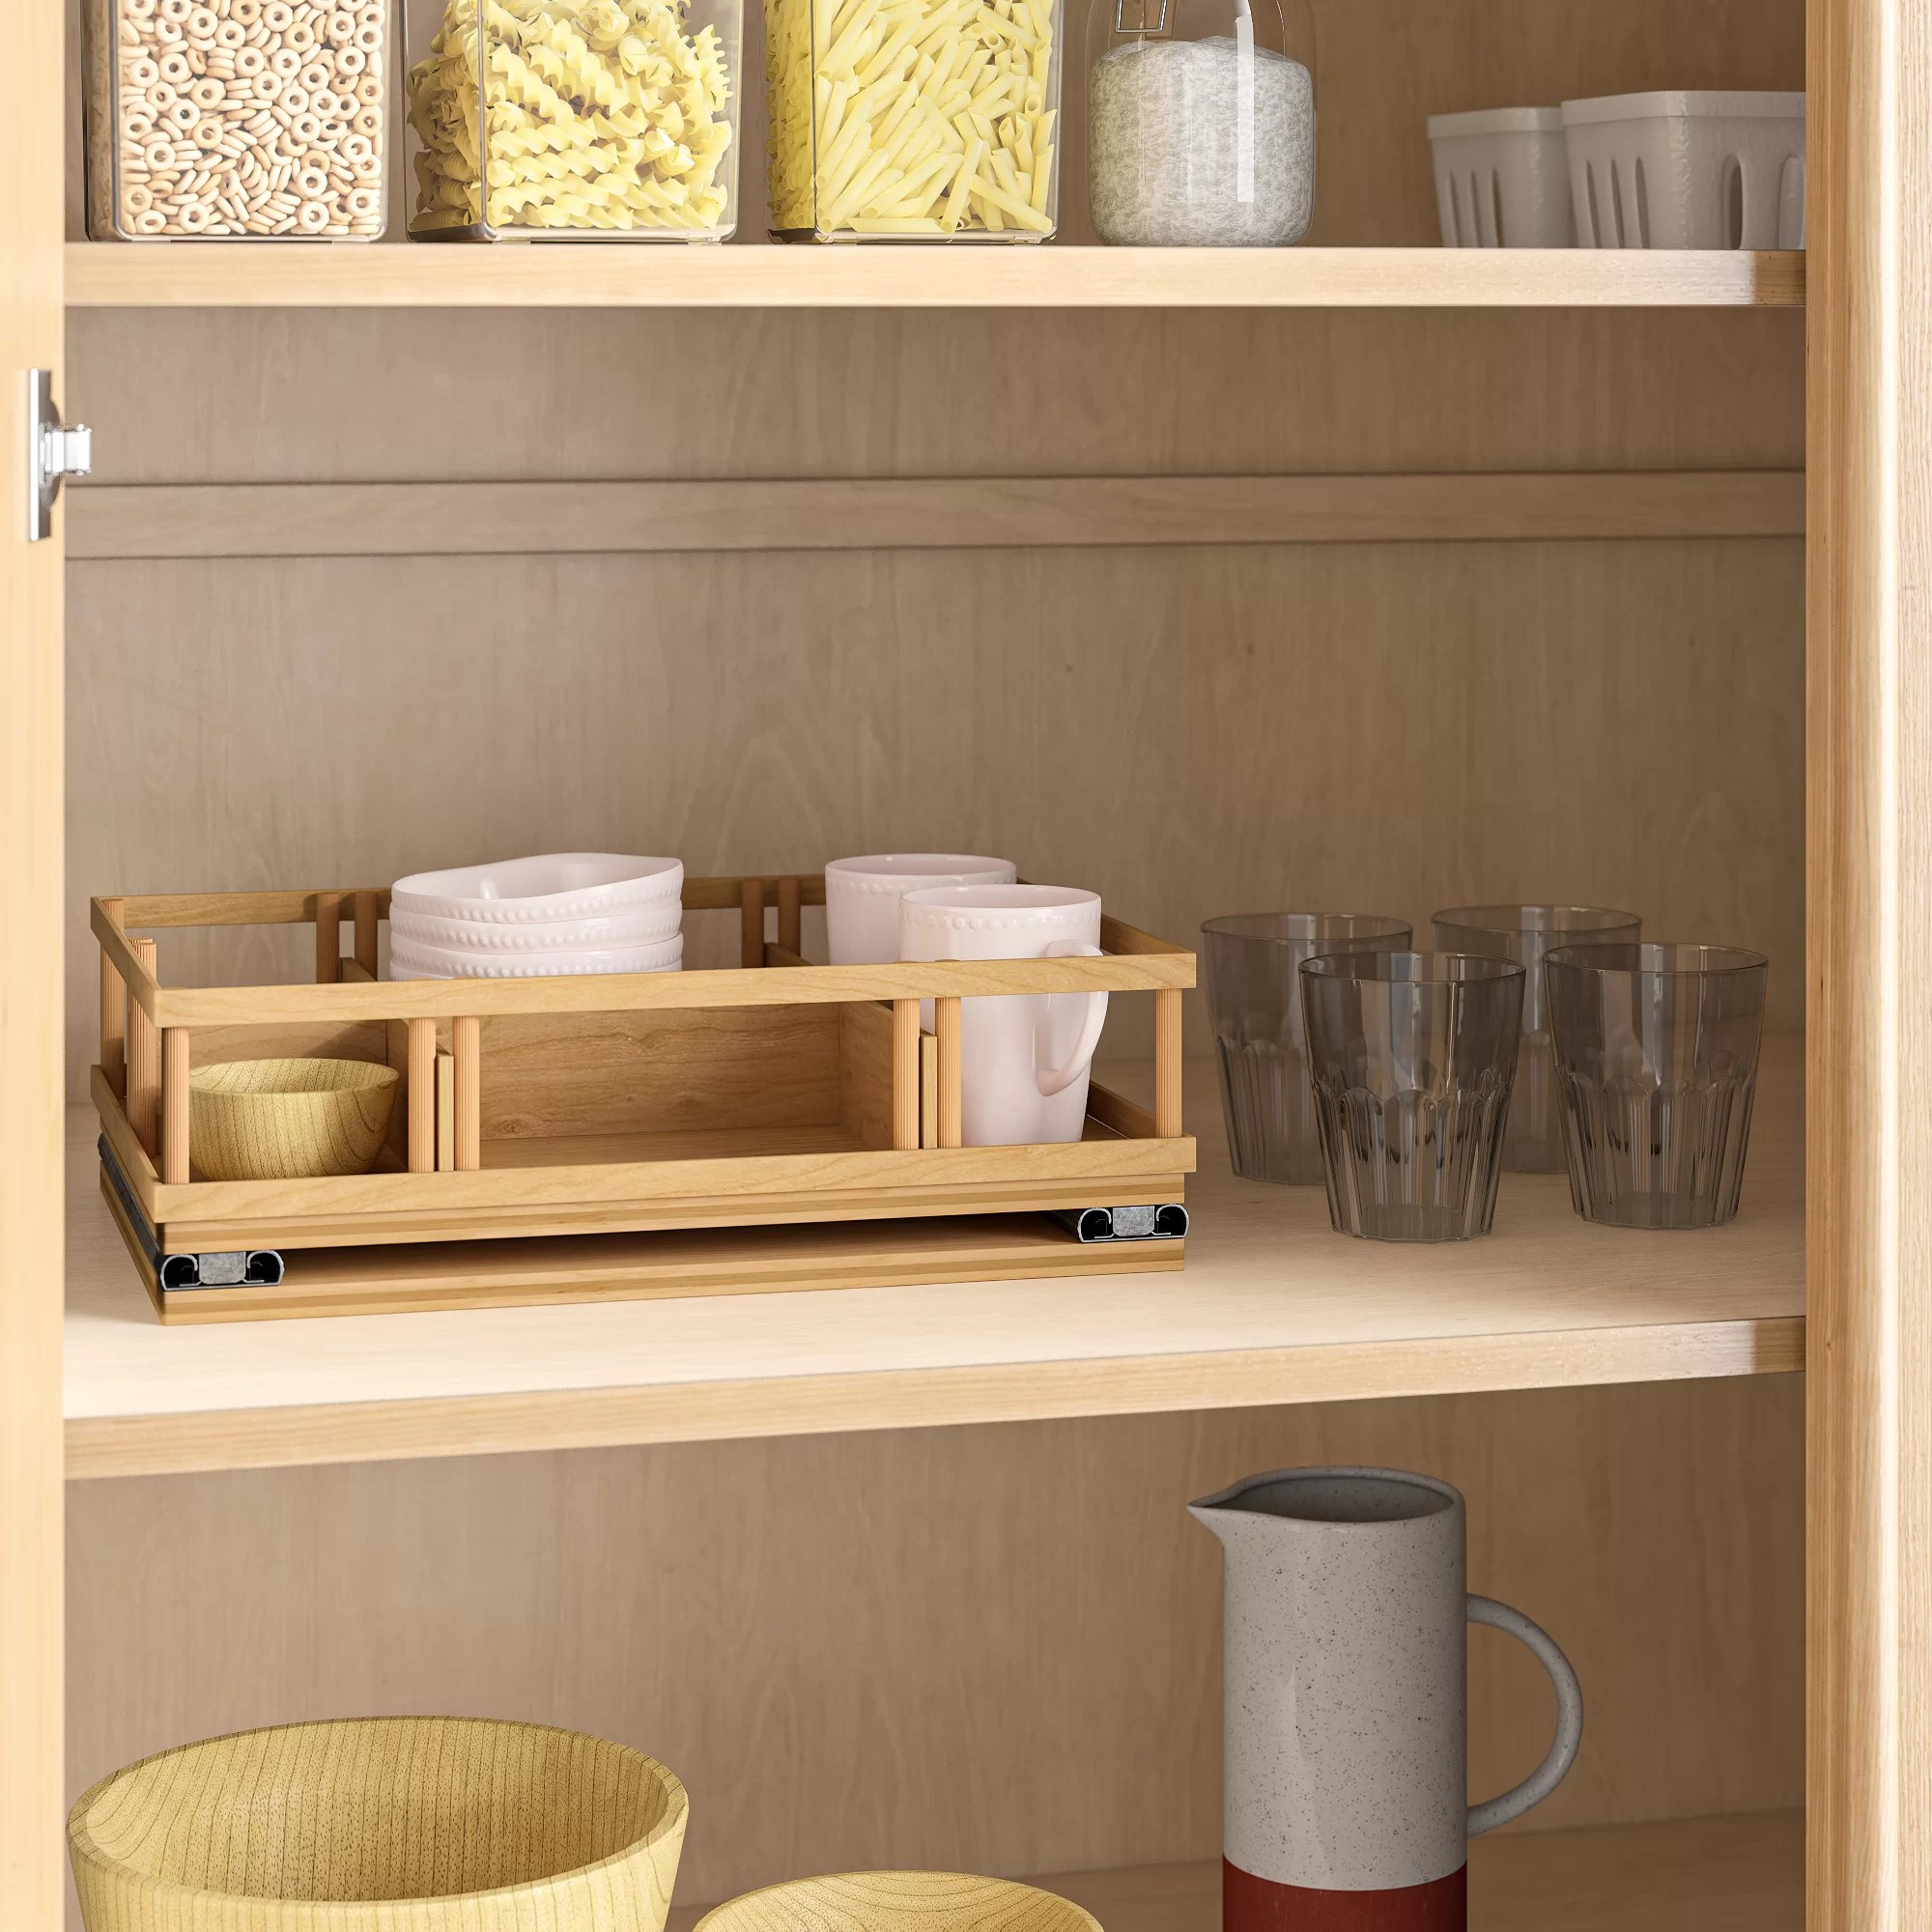 baron upper cabinet spice rack caddy large pull out drawer